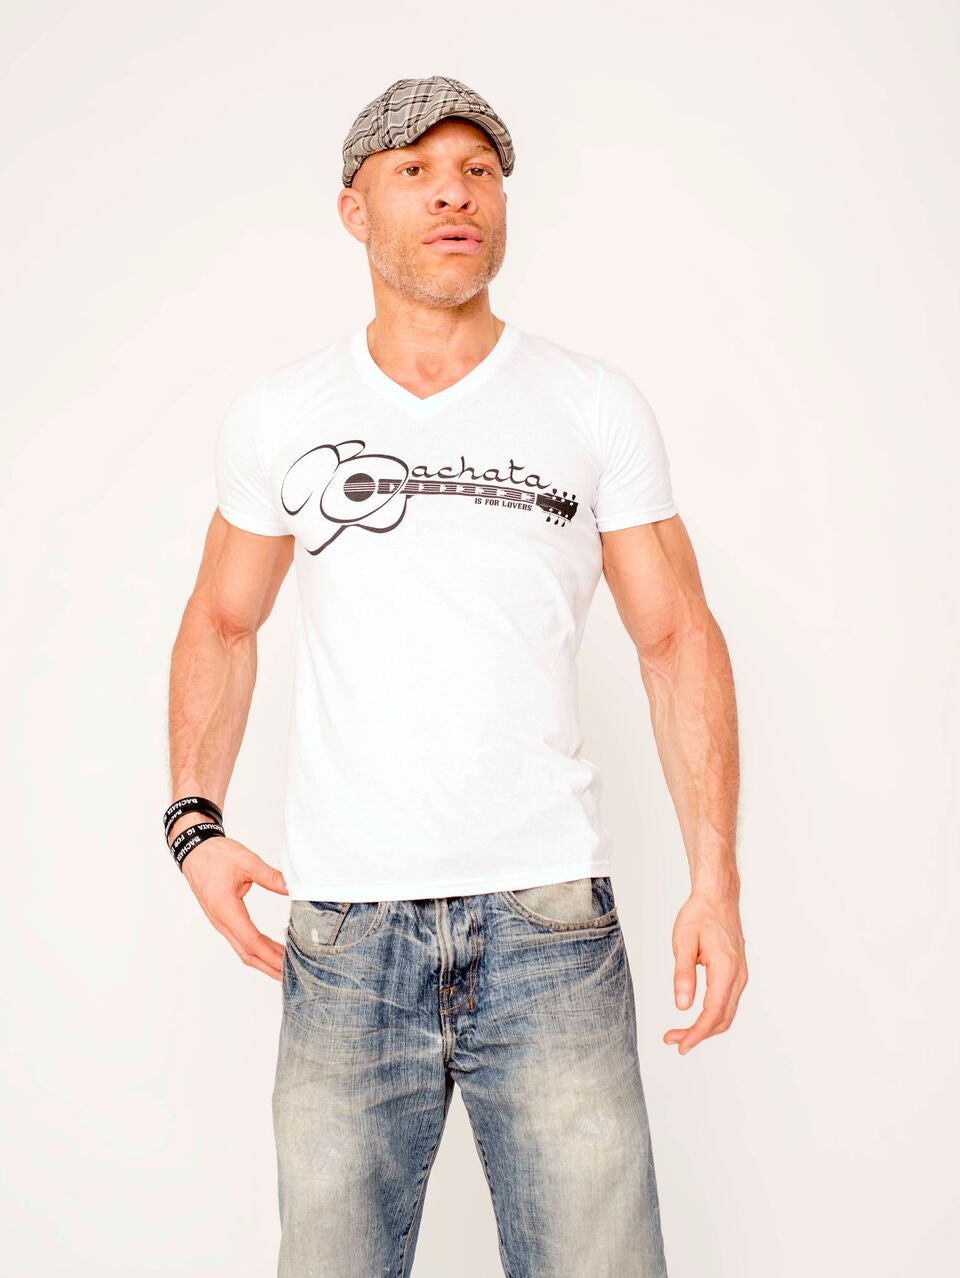 Men's Bachata Is For Lovers V Neck Tee